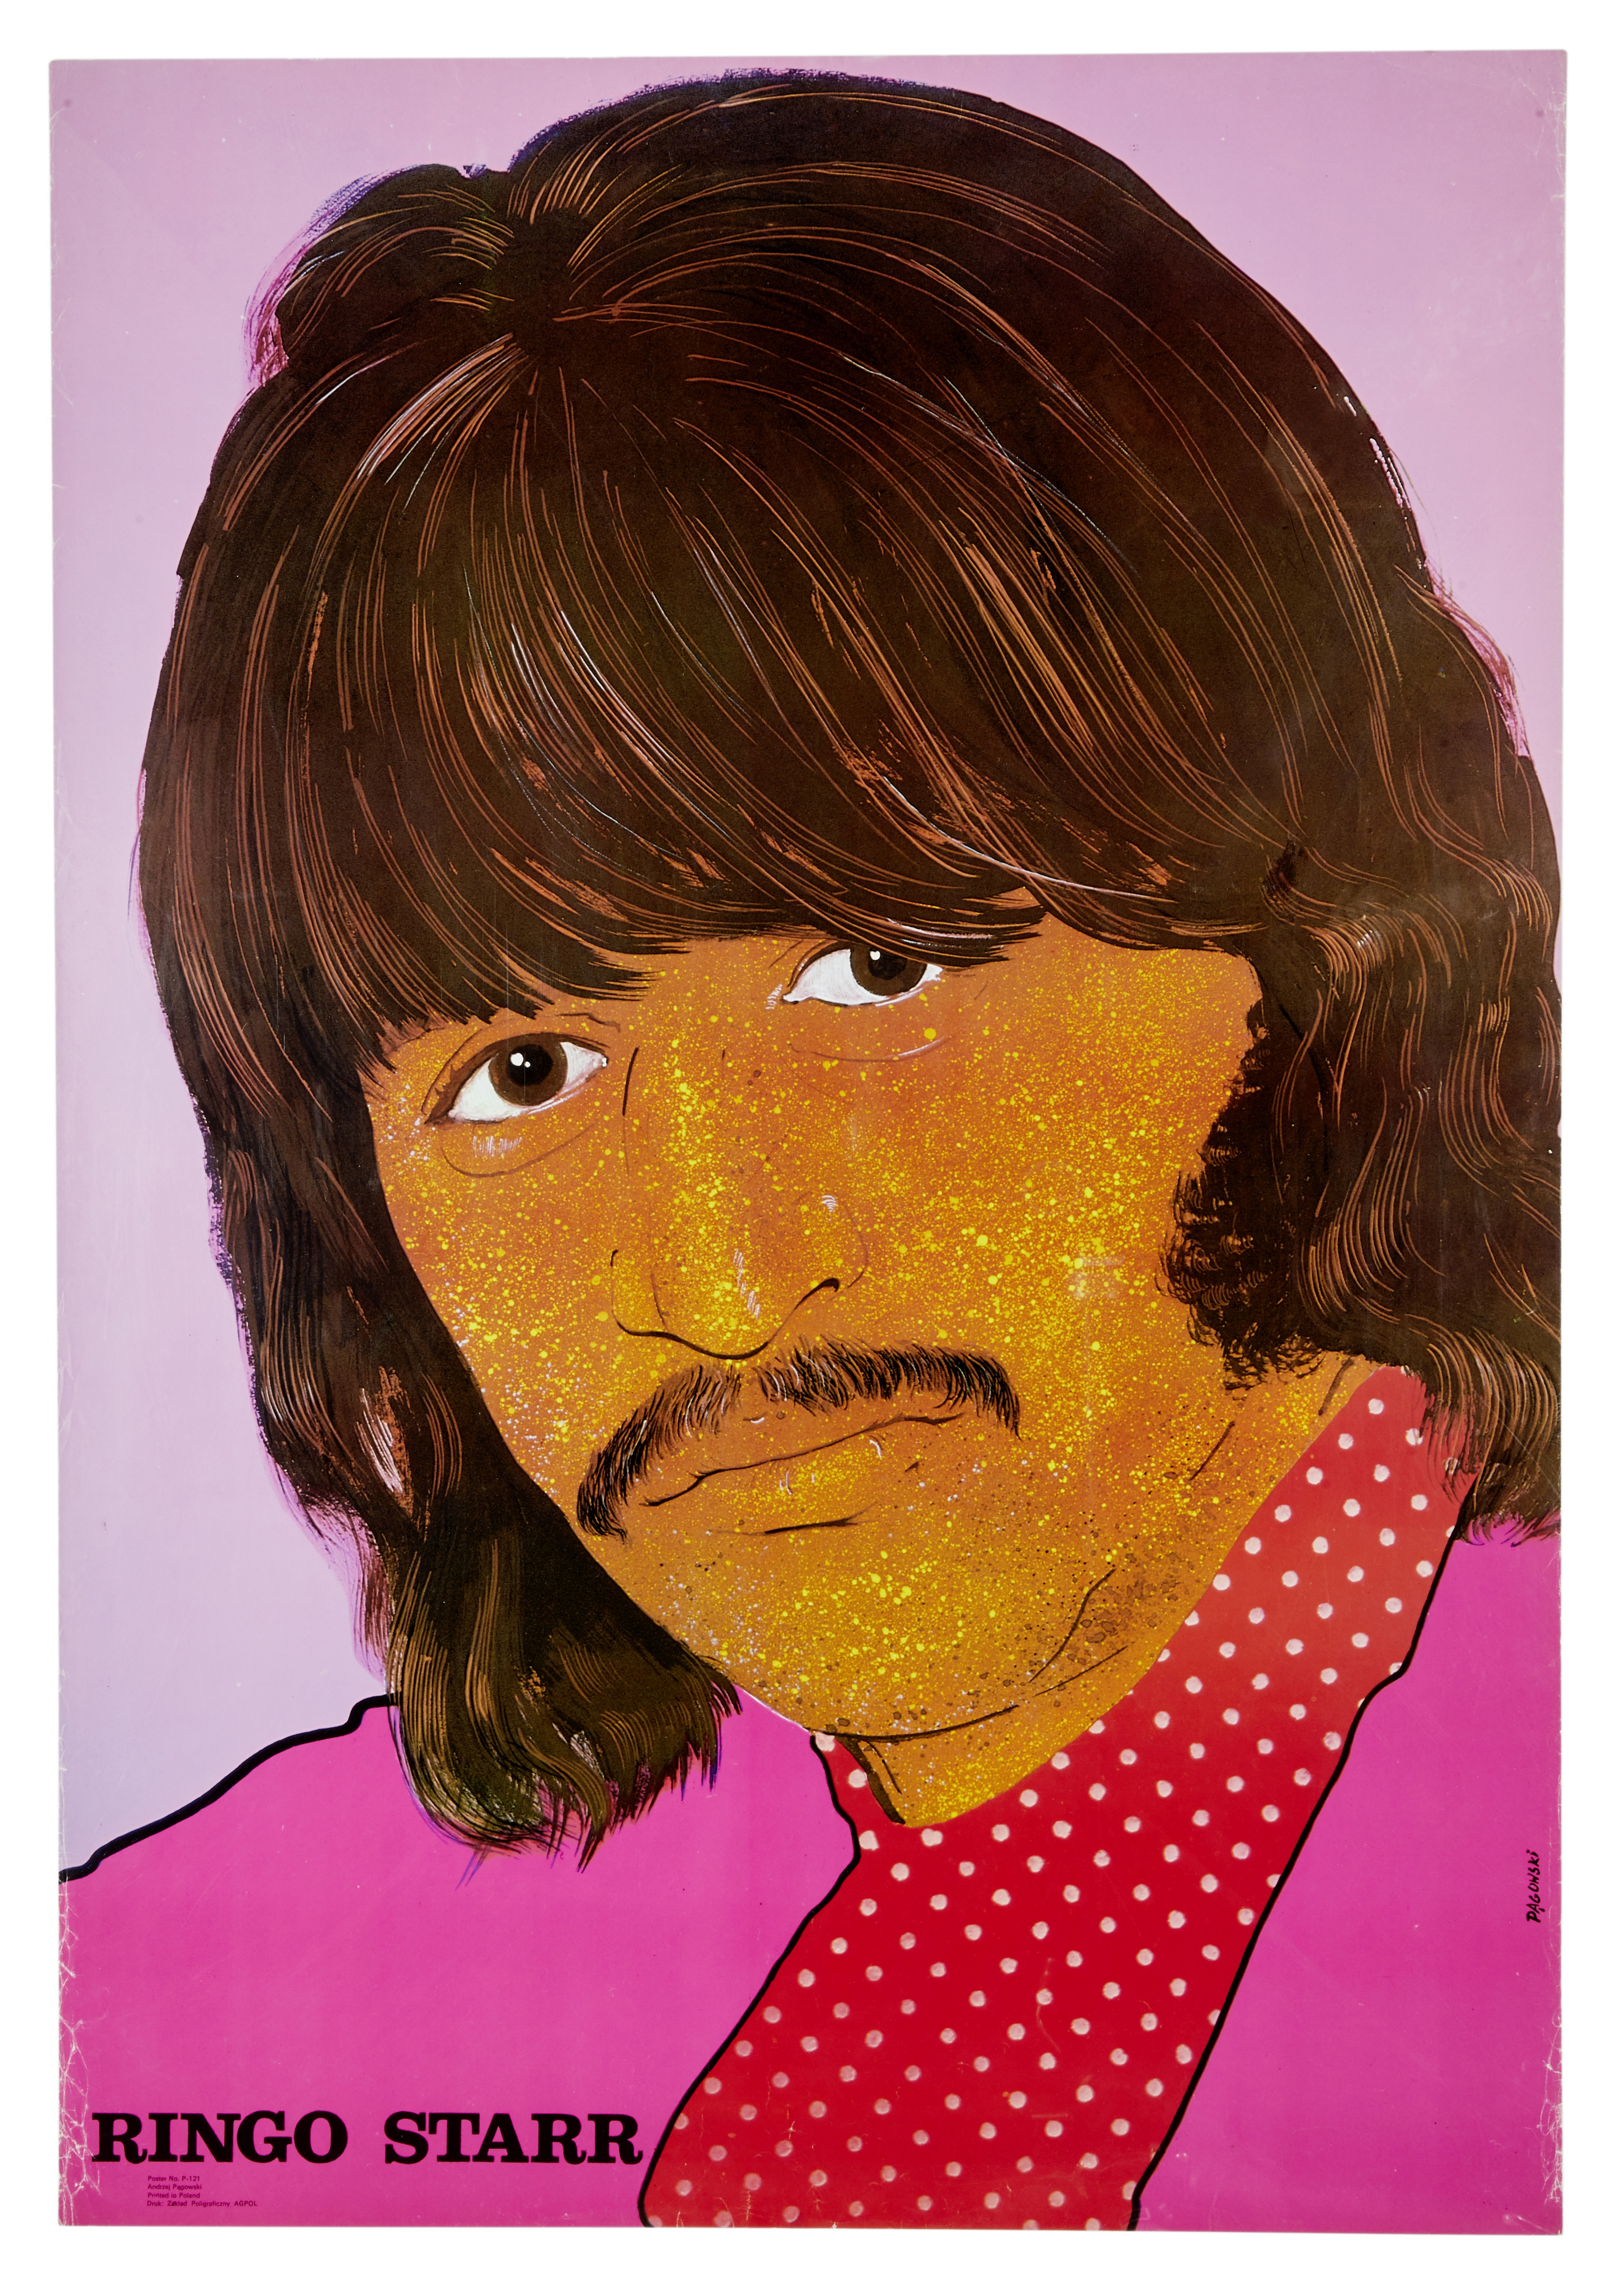 Lot 19 - A Set of 4 Polish Beatles Personality Posters late 1960s